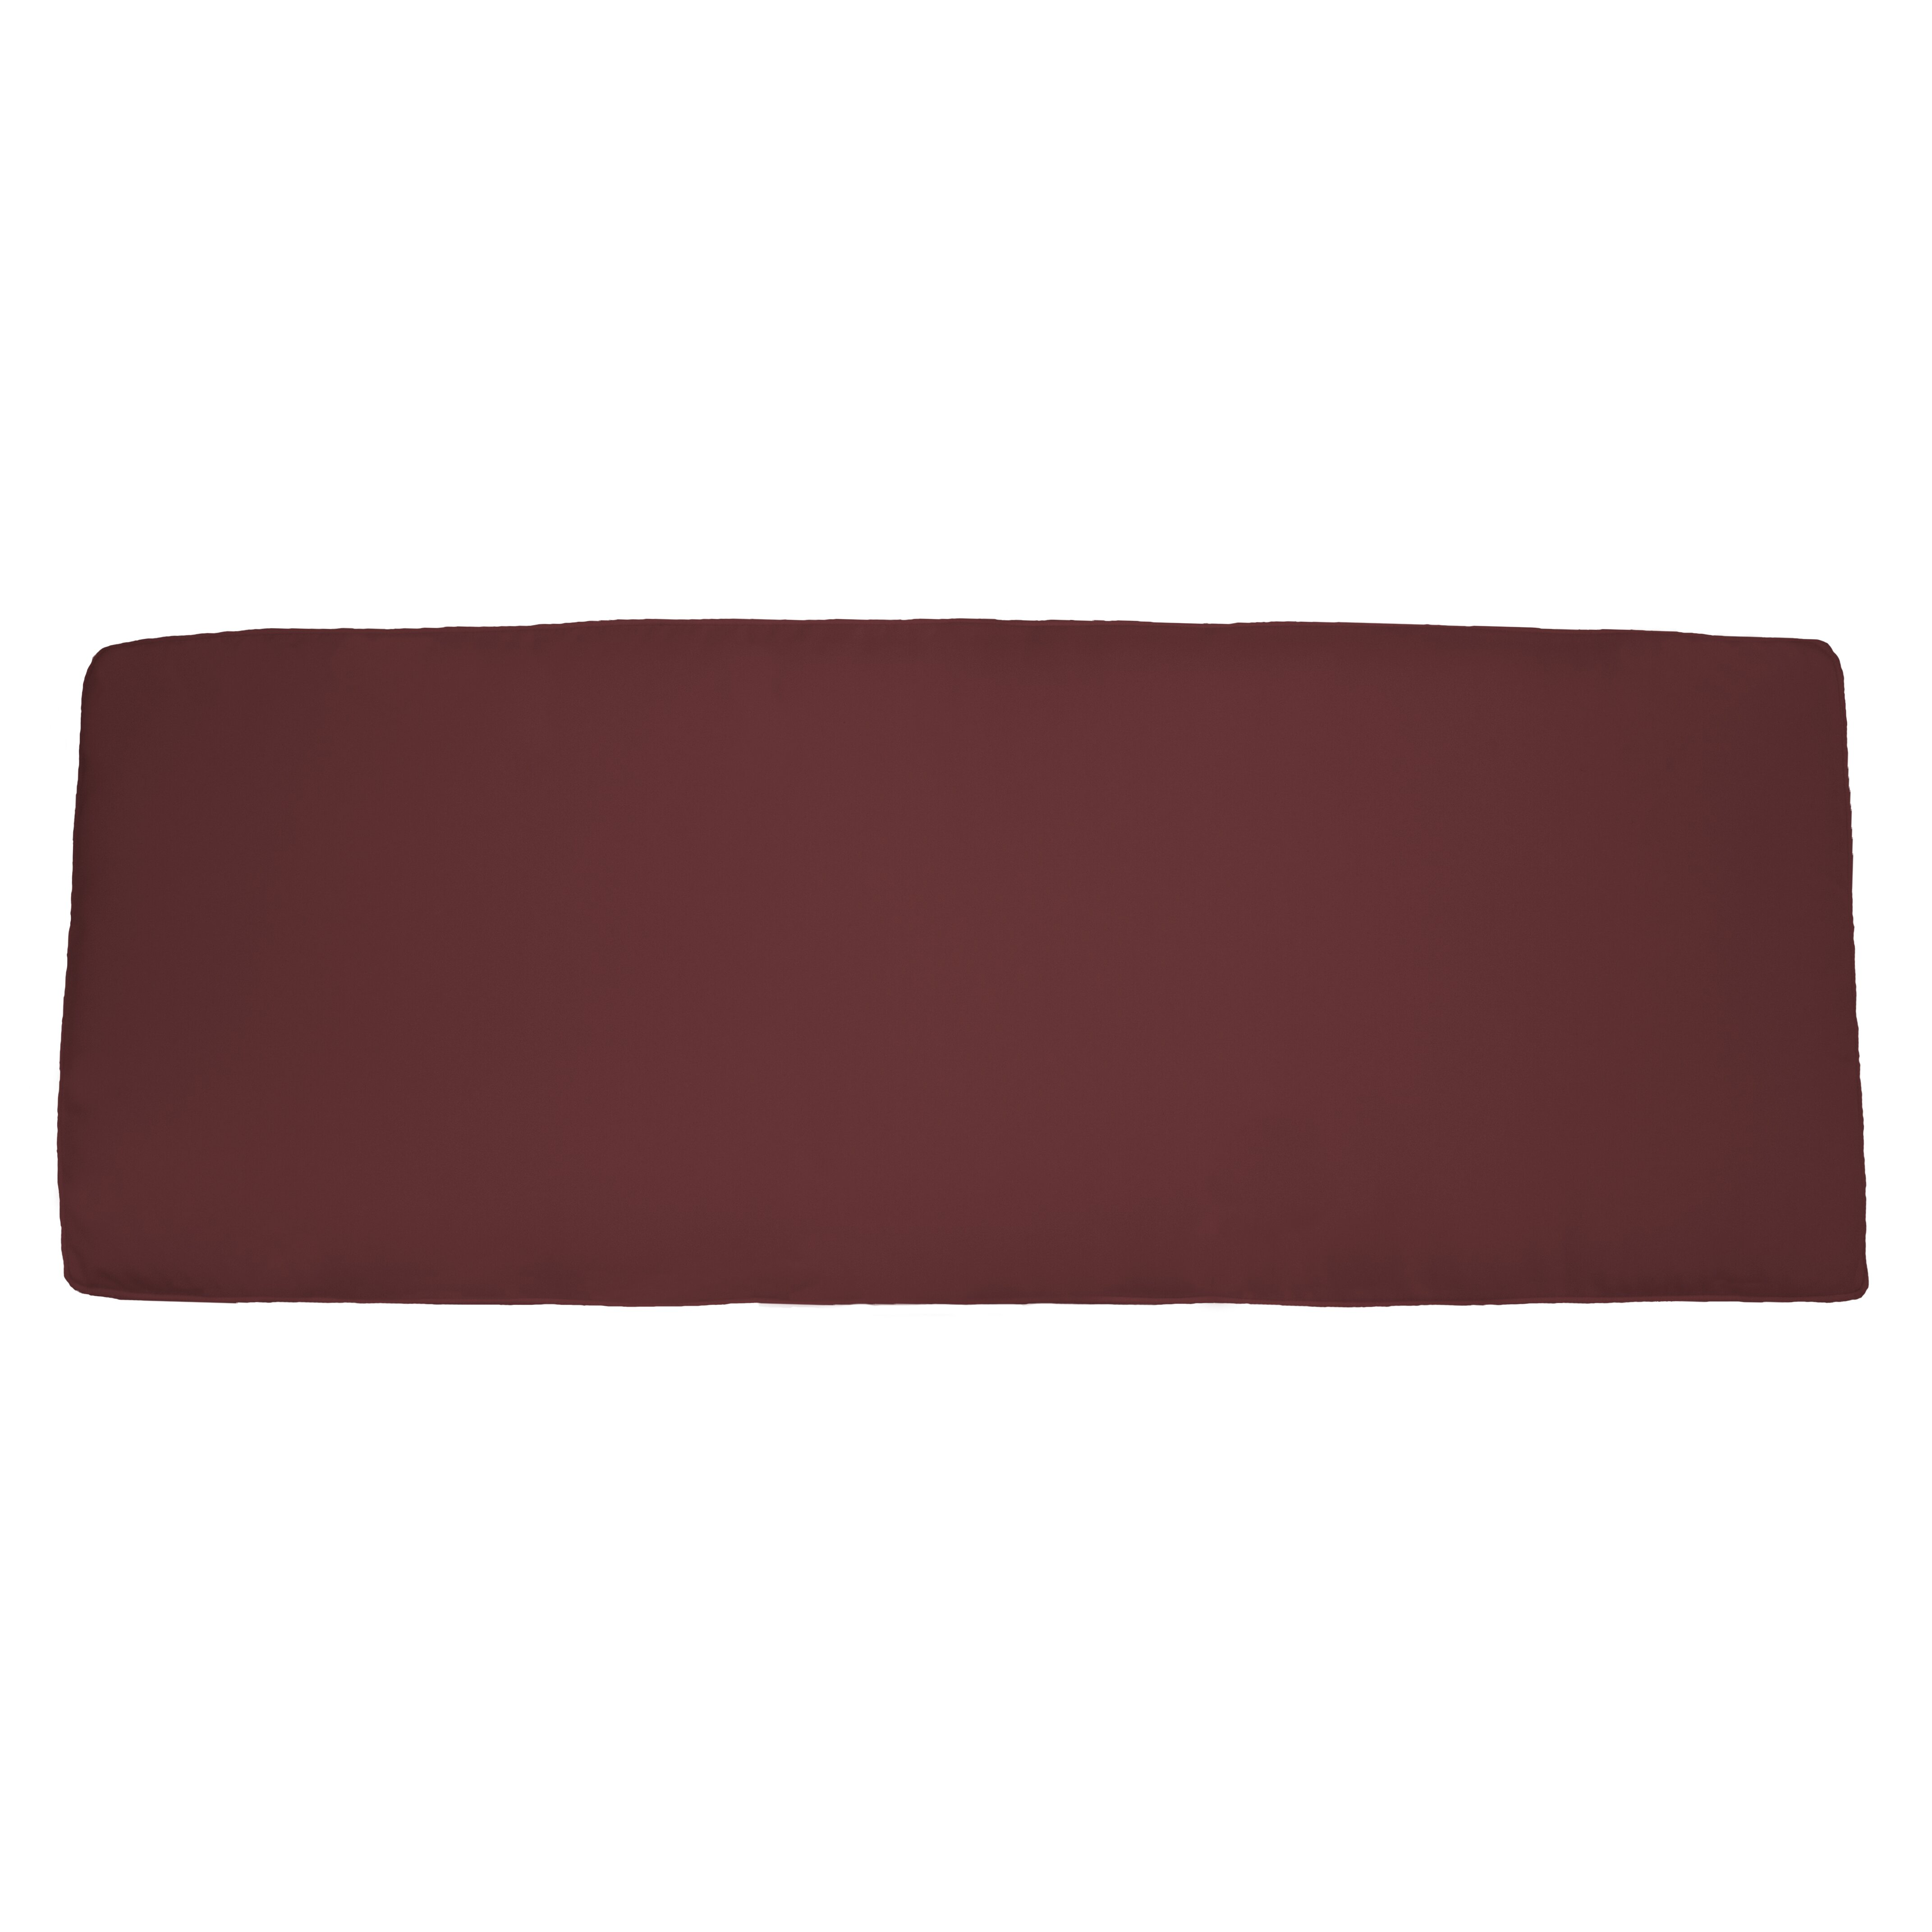 Wayfair Custom Outdoor Cushions Double Piped Outdoor Bench